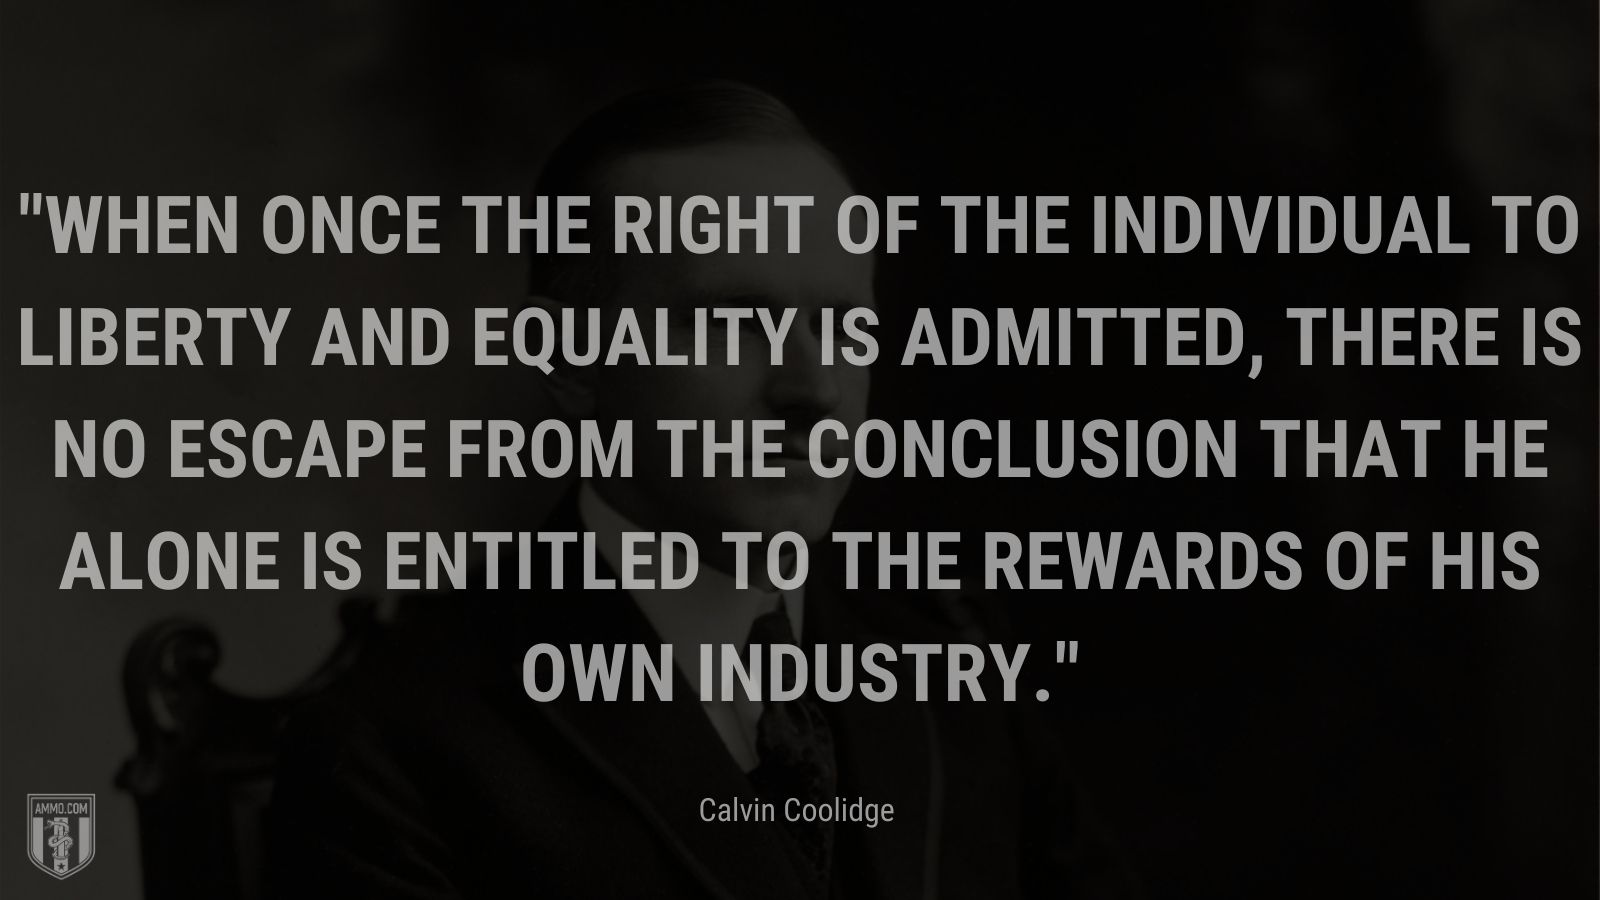 """""""When once the right of the individual to liberty and equality is admitted, there is no escape from the conclusion that he alone is entitled to the rewards of his own industry."""" - Calvin Coolidge"""